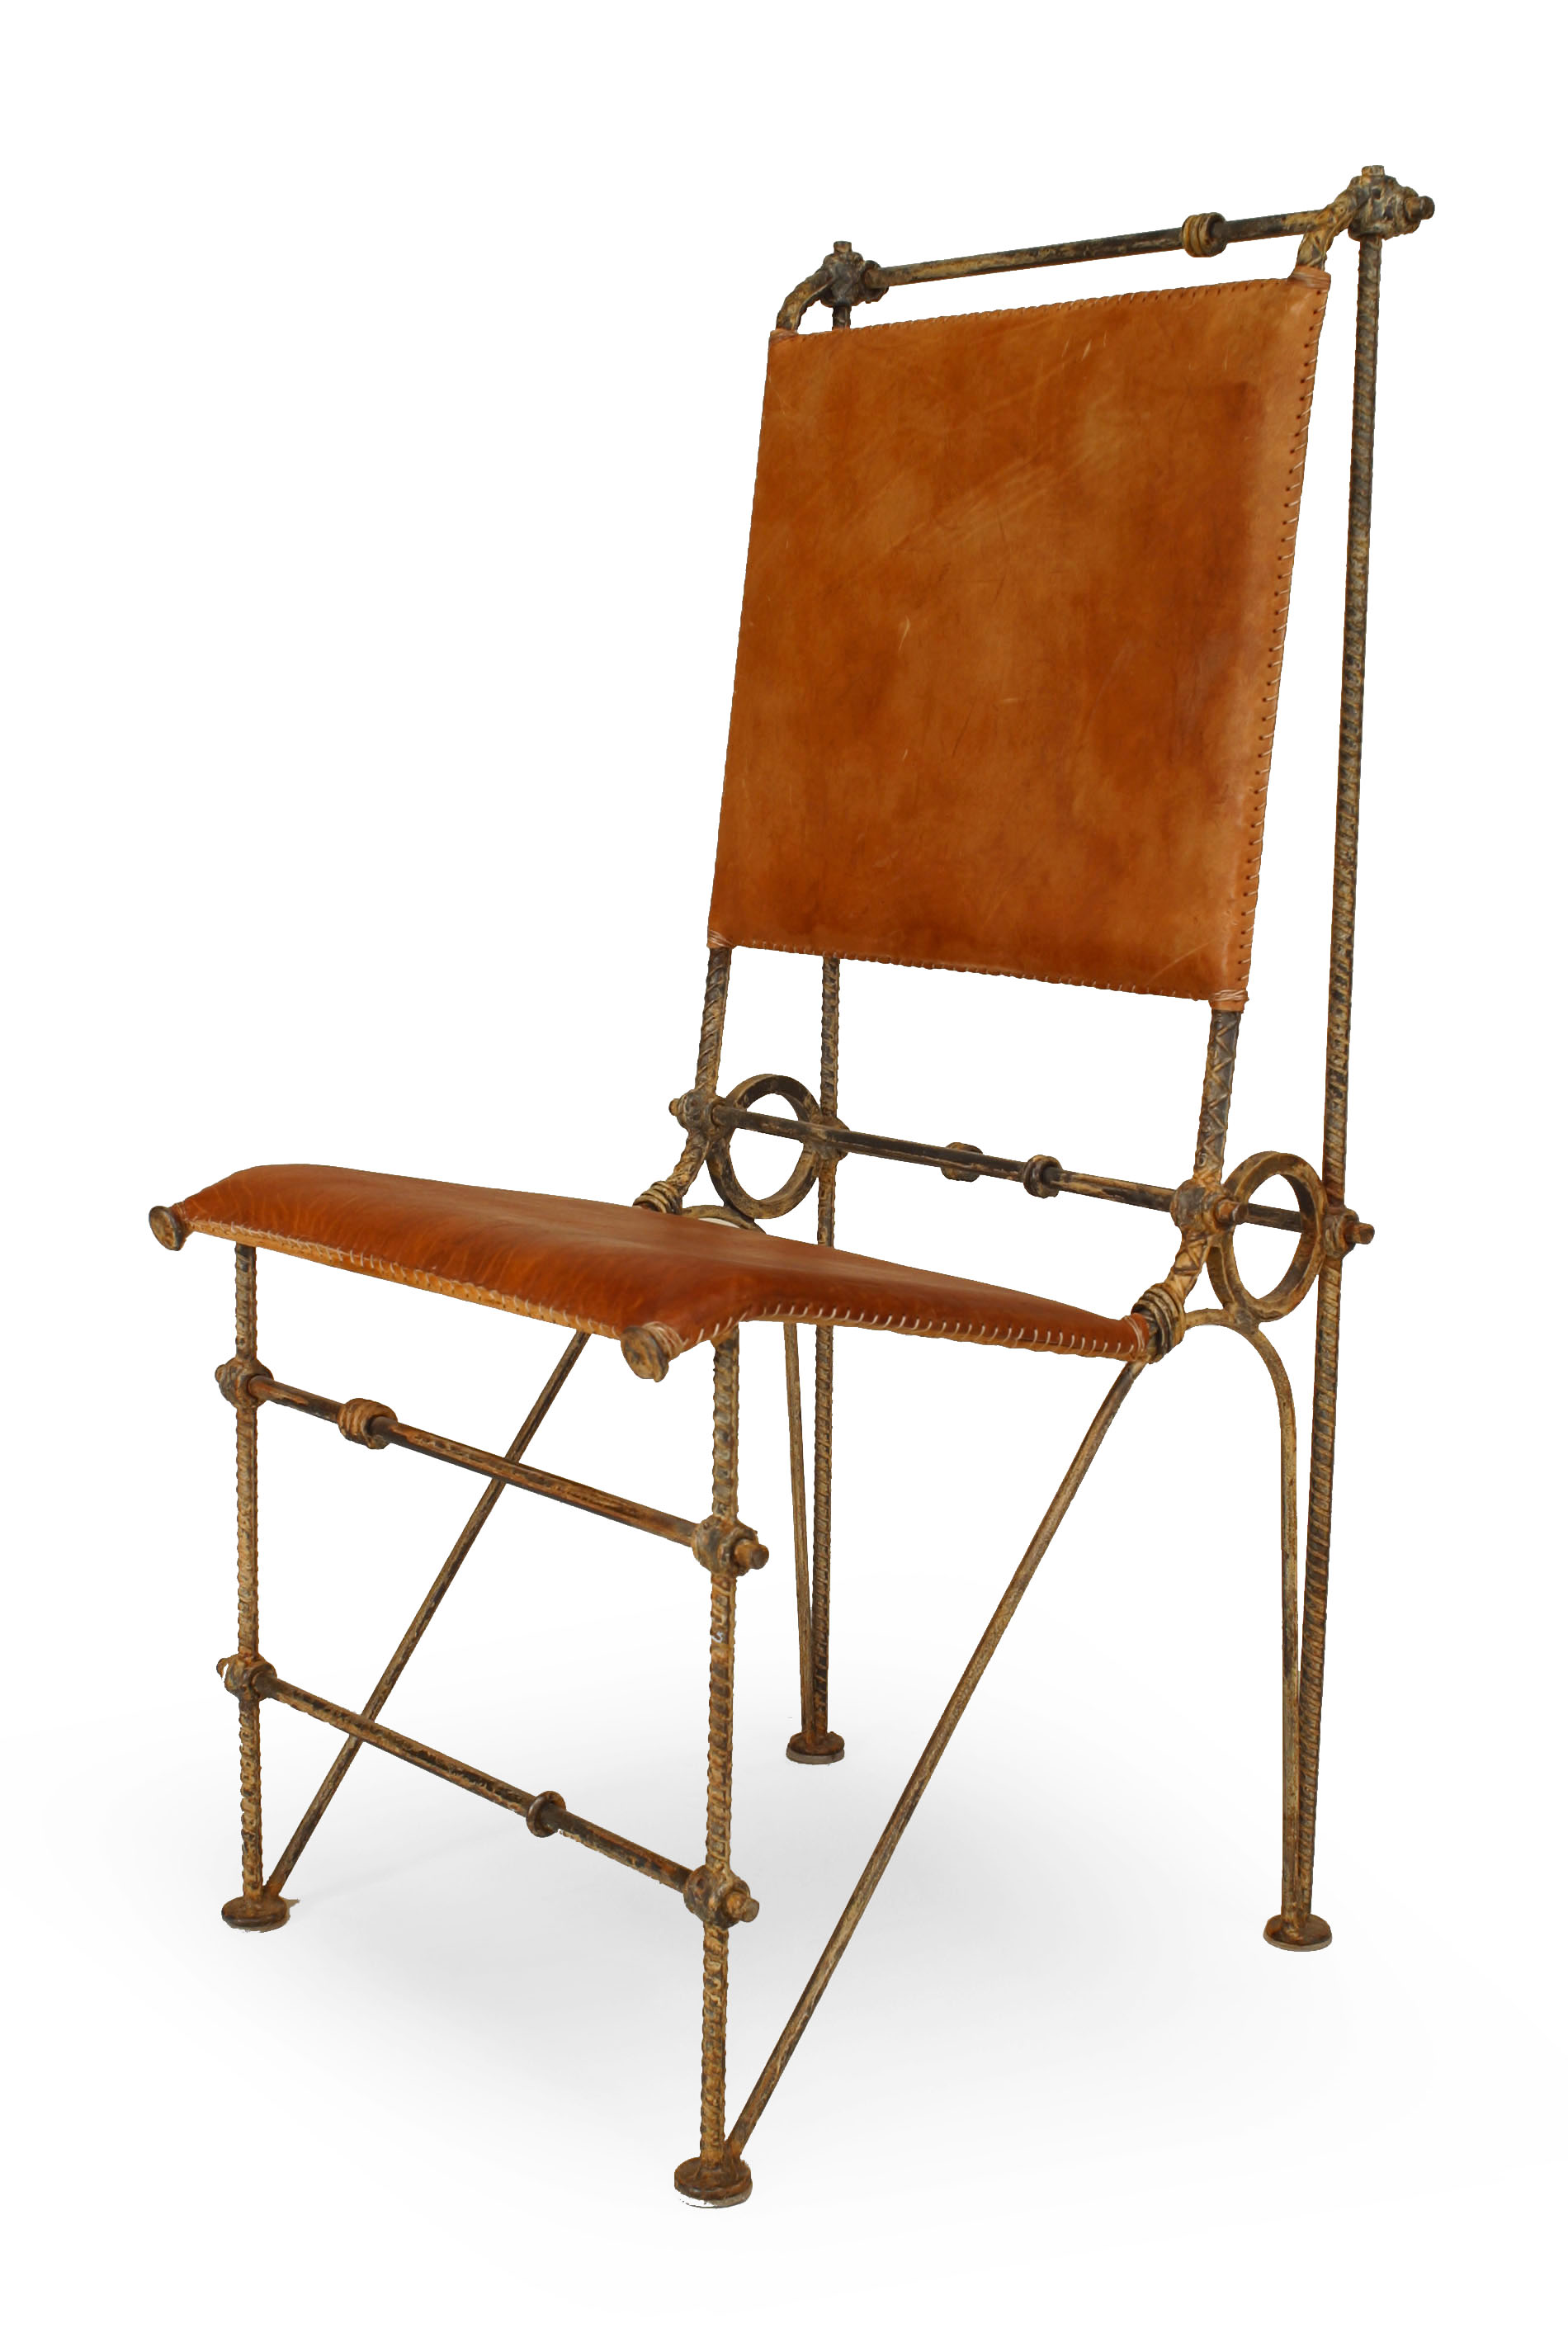 About A Chair 12 Side Chair.American Post War Leather Chairs Newel